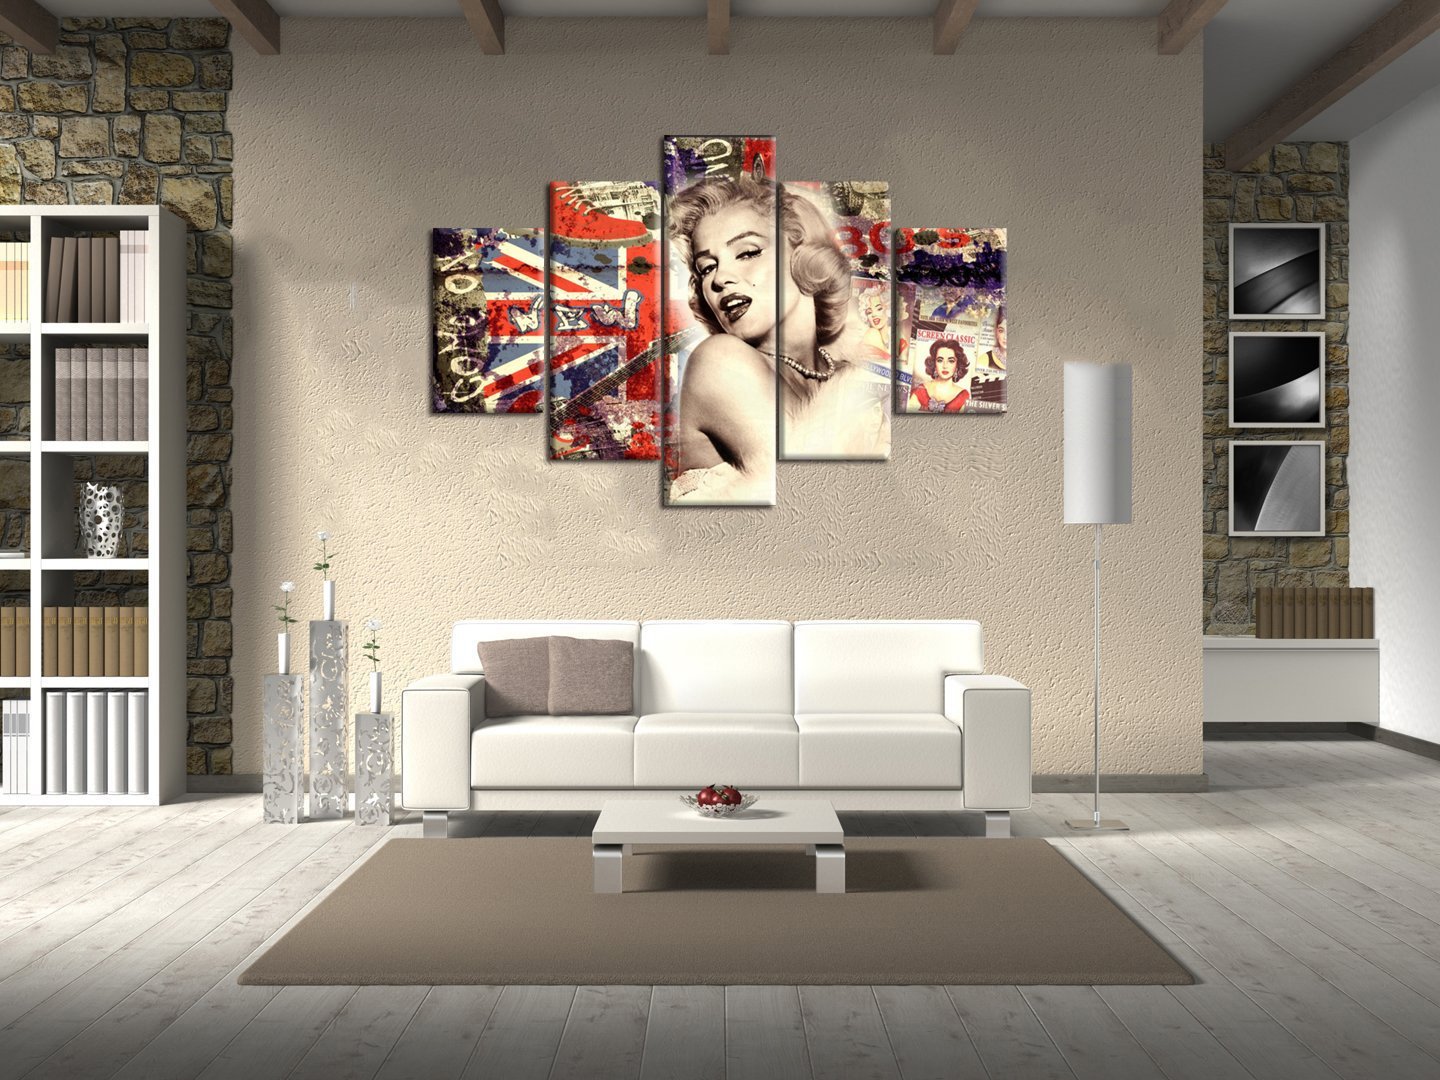 Vintage Extra Large Painting on Canvas Marilyn Monroe Retro Wall Art American Flag Background Artwork 5 Panel Printed Picture for Living Room Home Decoration Framed Ready to Hang(60''Wx40''H) by Yatsen Bridge